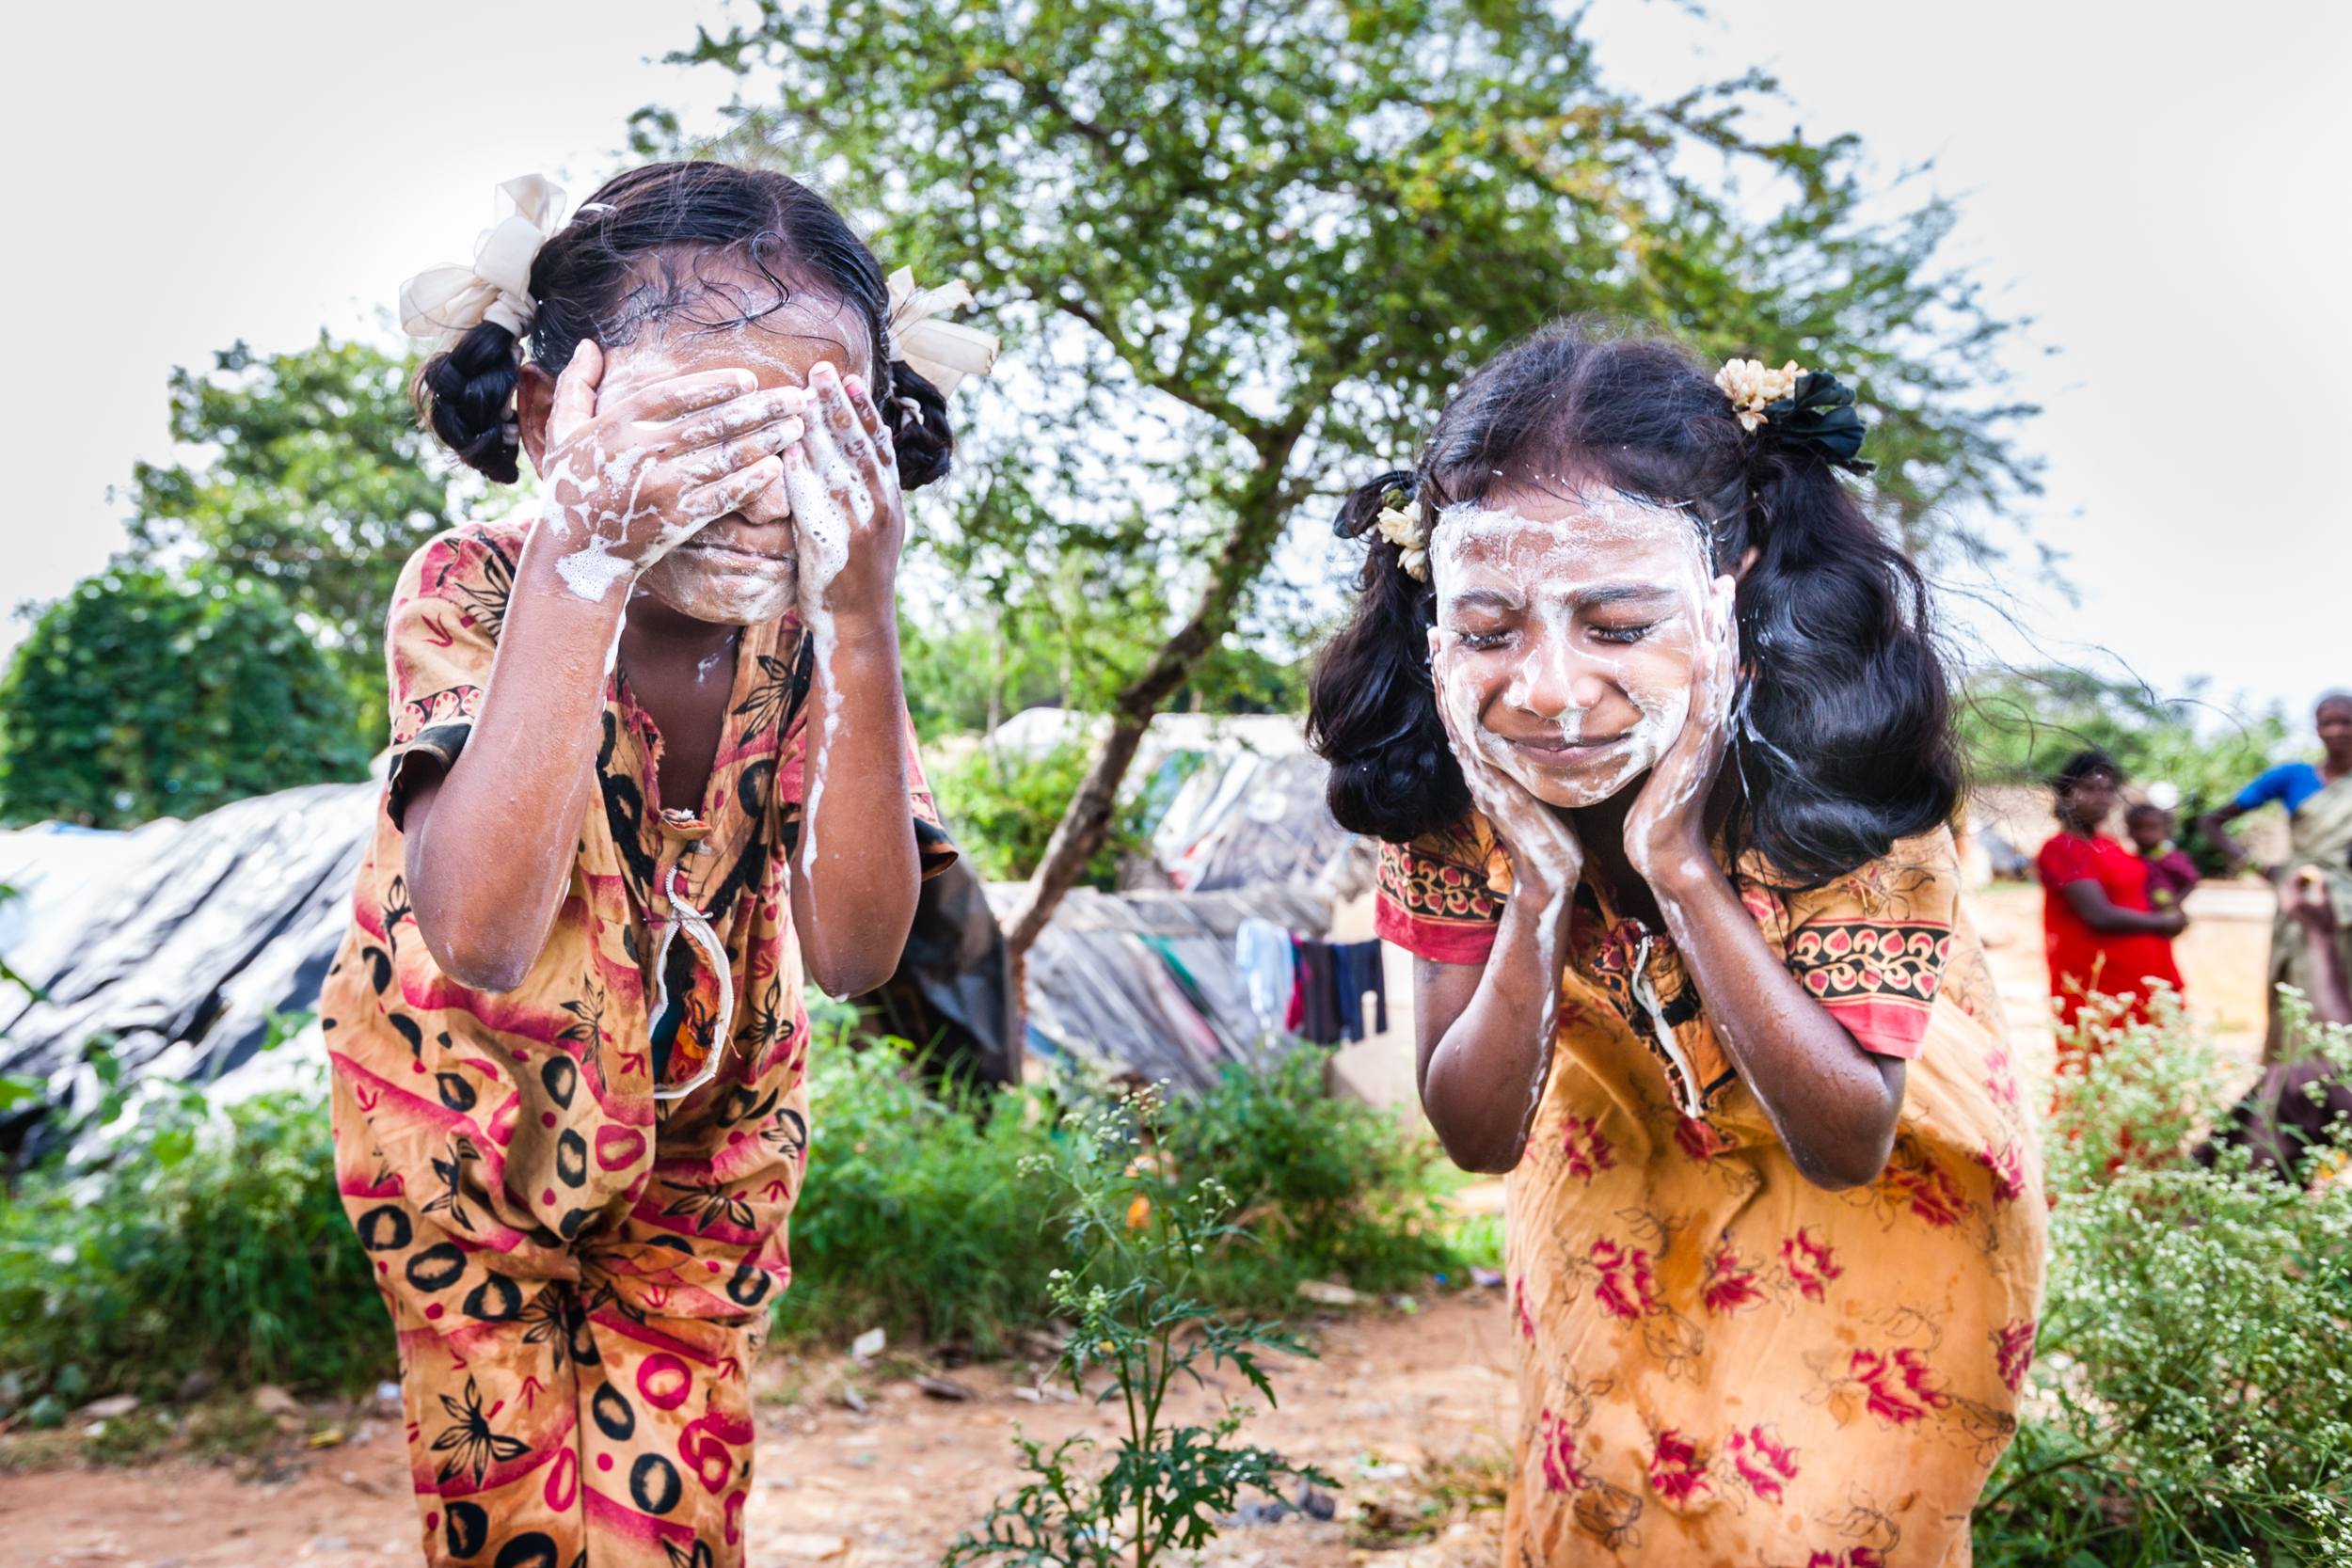 Two Dalit girls living in a slum area of Bengaluru wash their faces before going to school. Non of the families in the girls'community had a private bathroom and washed instead on wasteland.  Assisted by the local Dalit community, the picture was taken for   Being Untouchable  , an exhibition of intimate portraits illustrating the injustice, poverty and inequality suffered by many of India's 167 million Dalits.